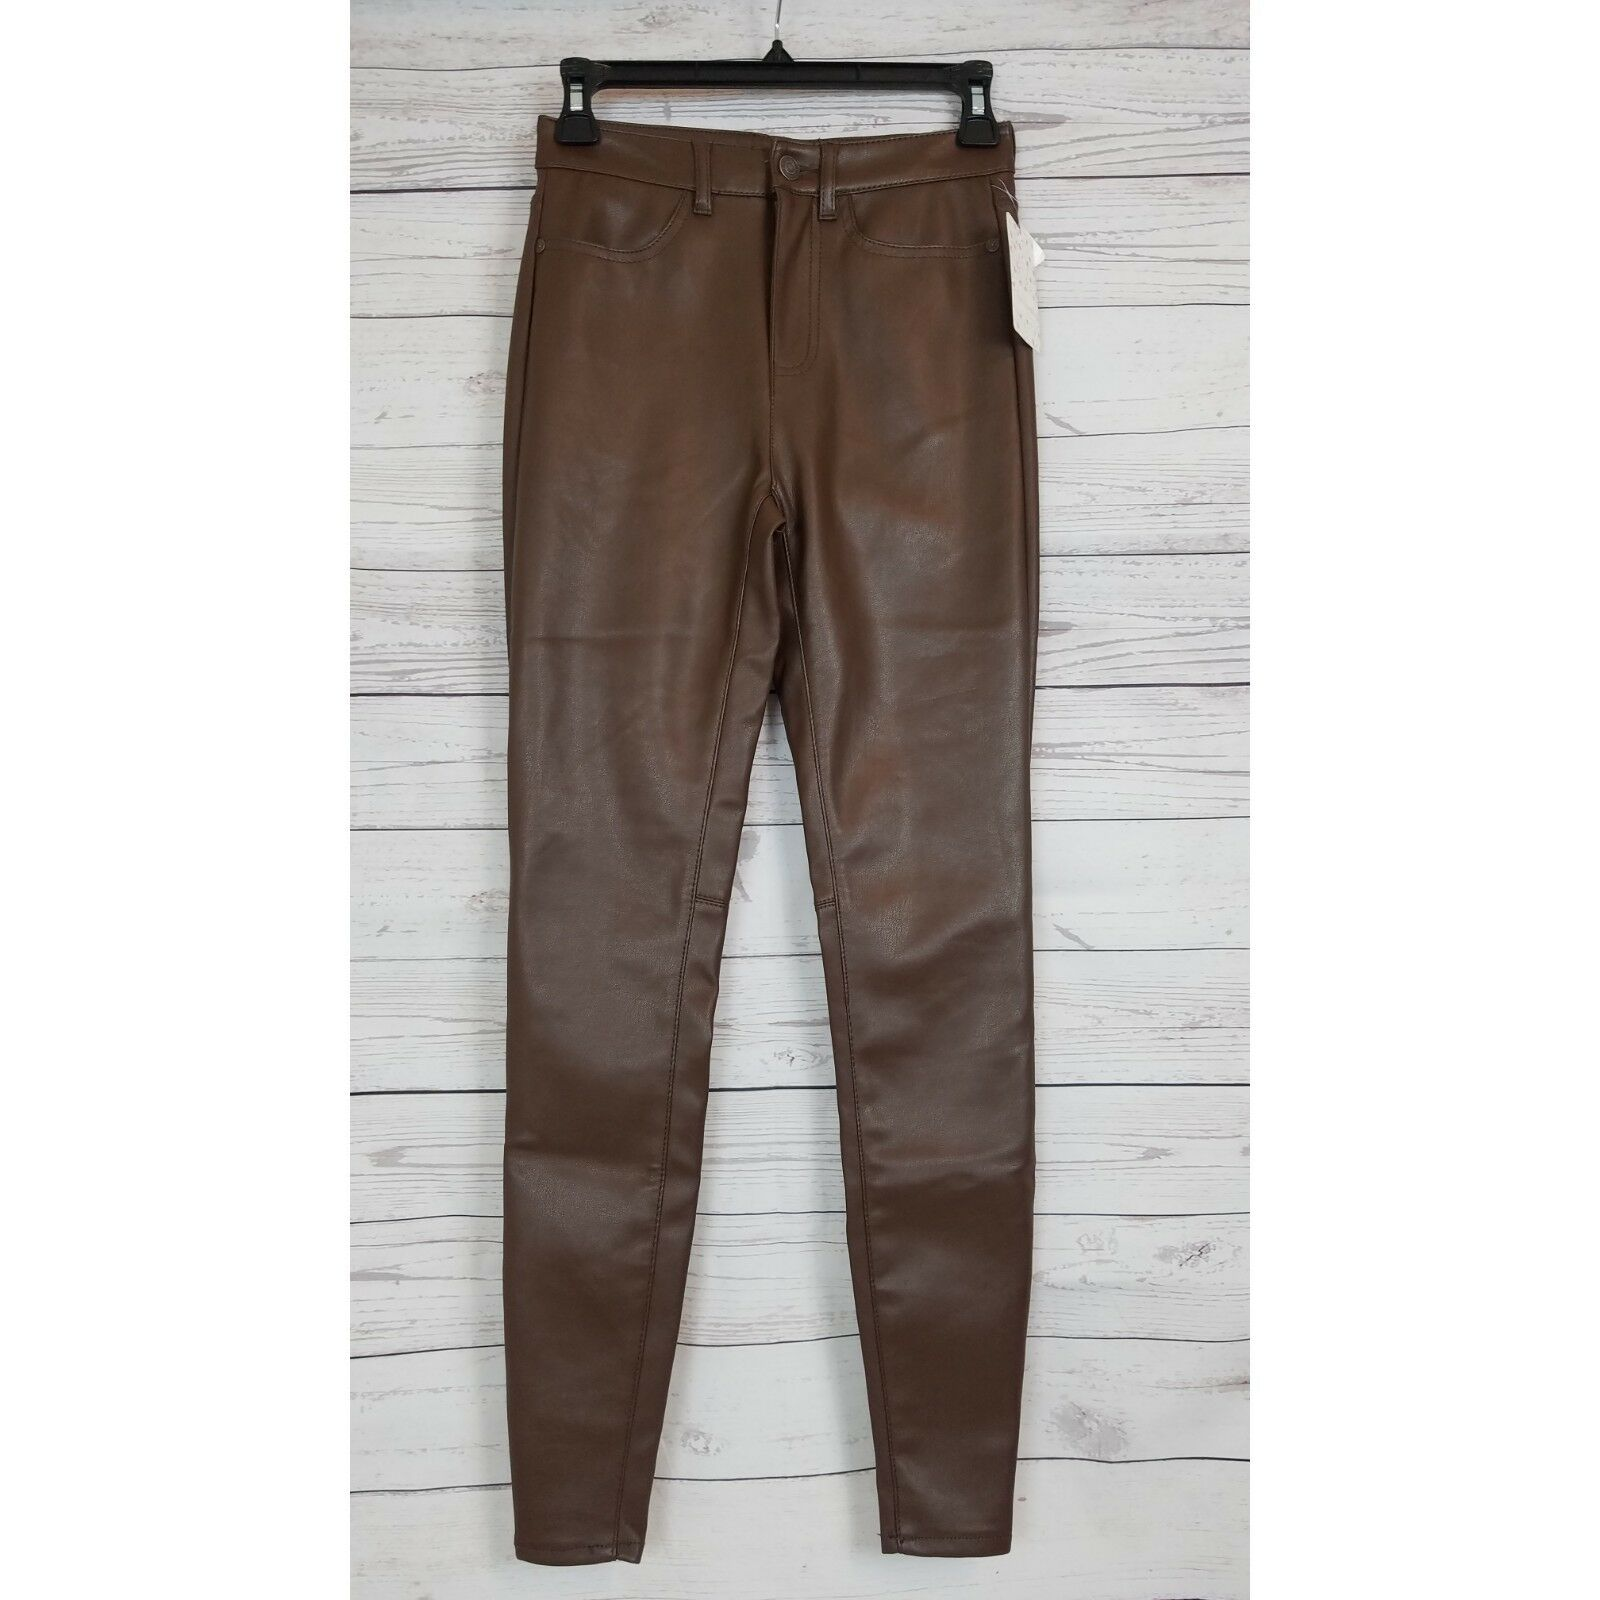 Free People Vegan Faux Leather Skinny Pants High Rise Size 26 Brown NWT